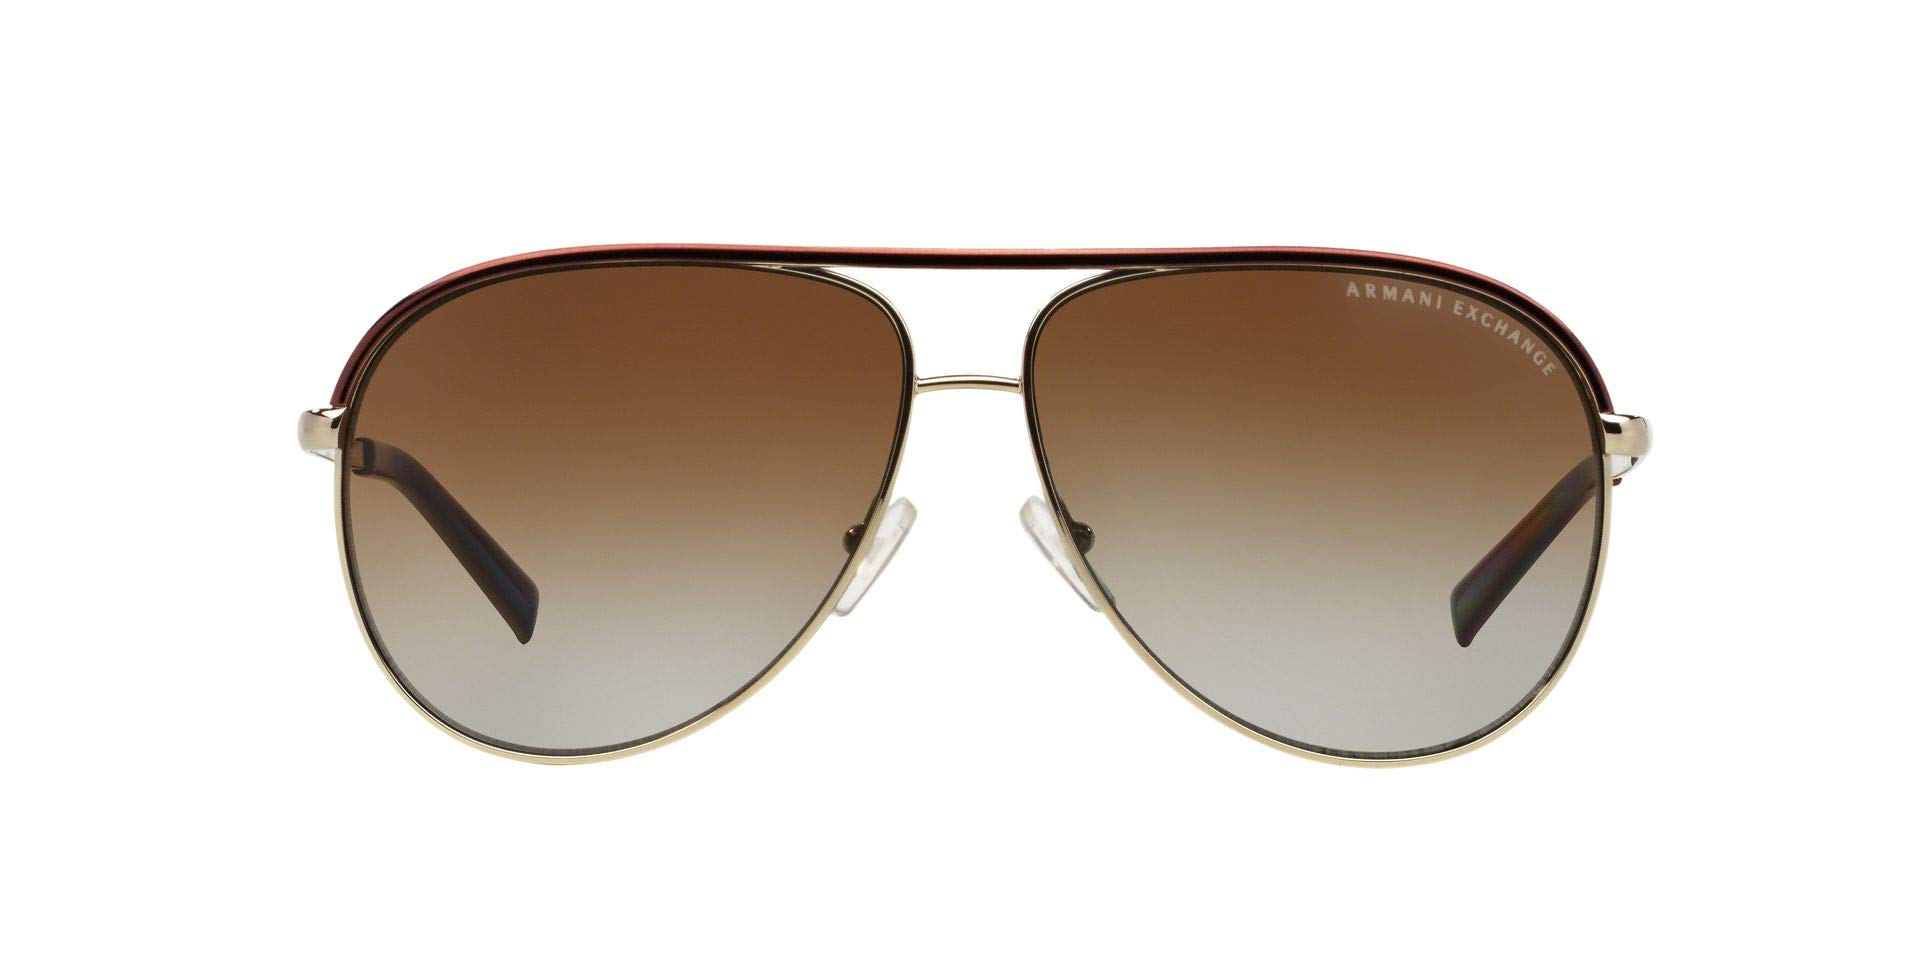 Armani Exchange Metal Unisex Polarized Aviator Sunglasses, Light Gold/Dark Brown, 61 mm by A|X Armani Exchange